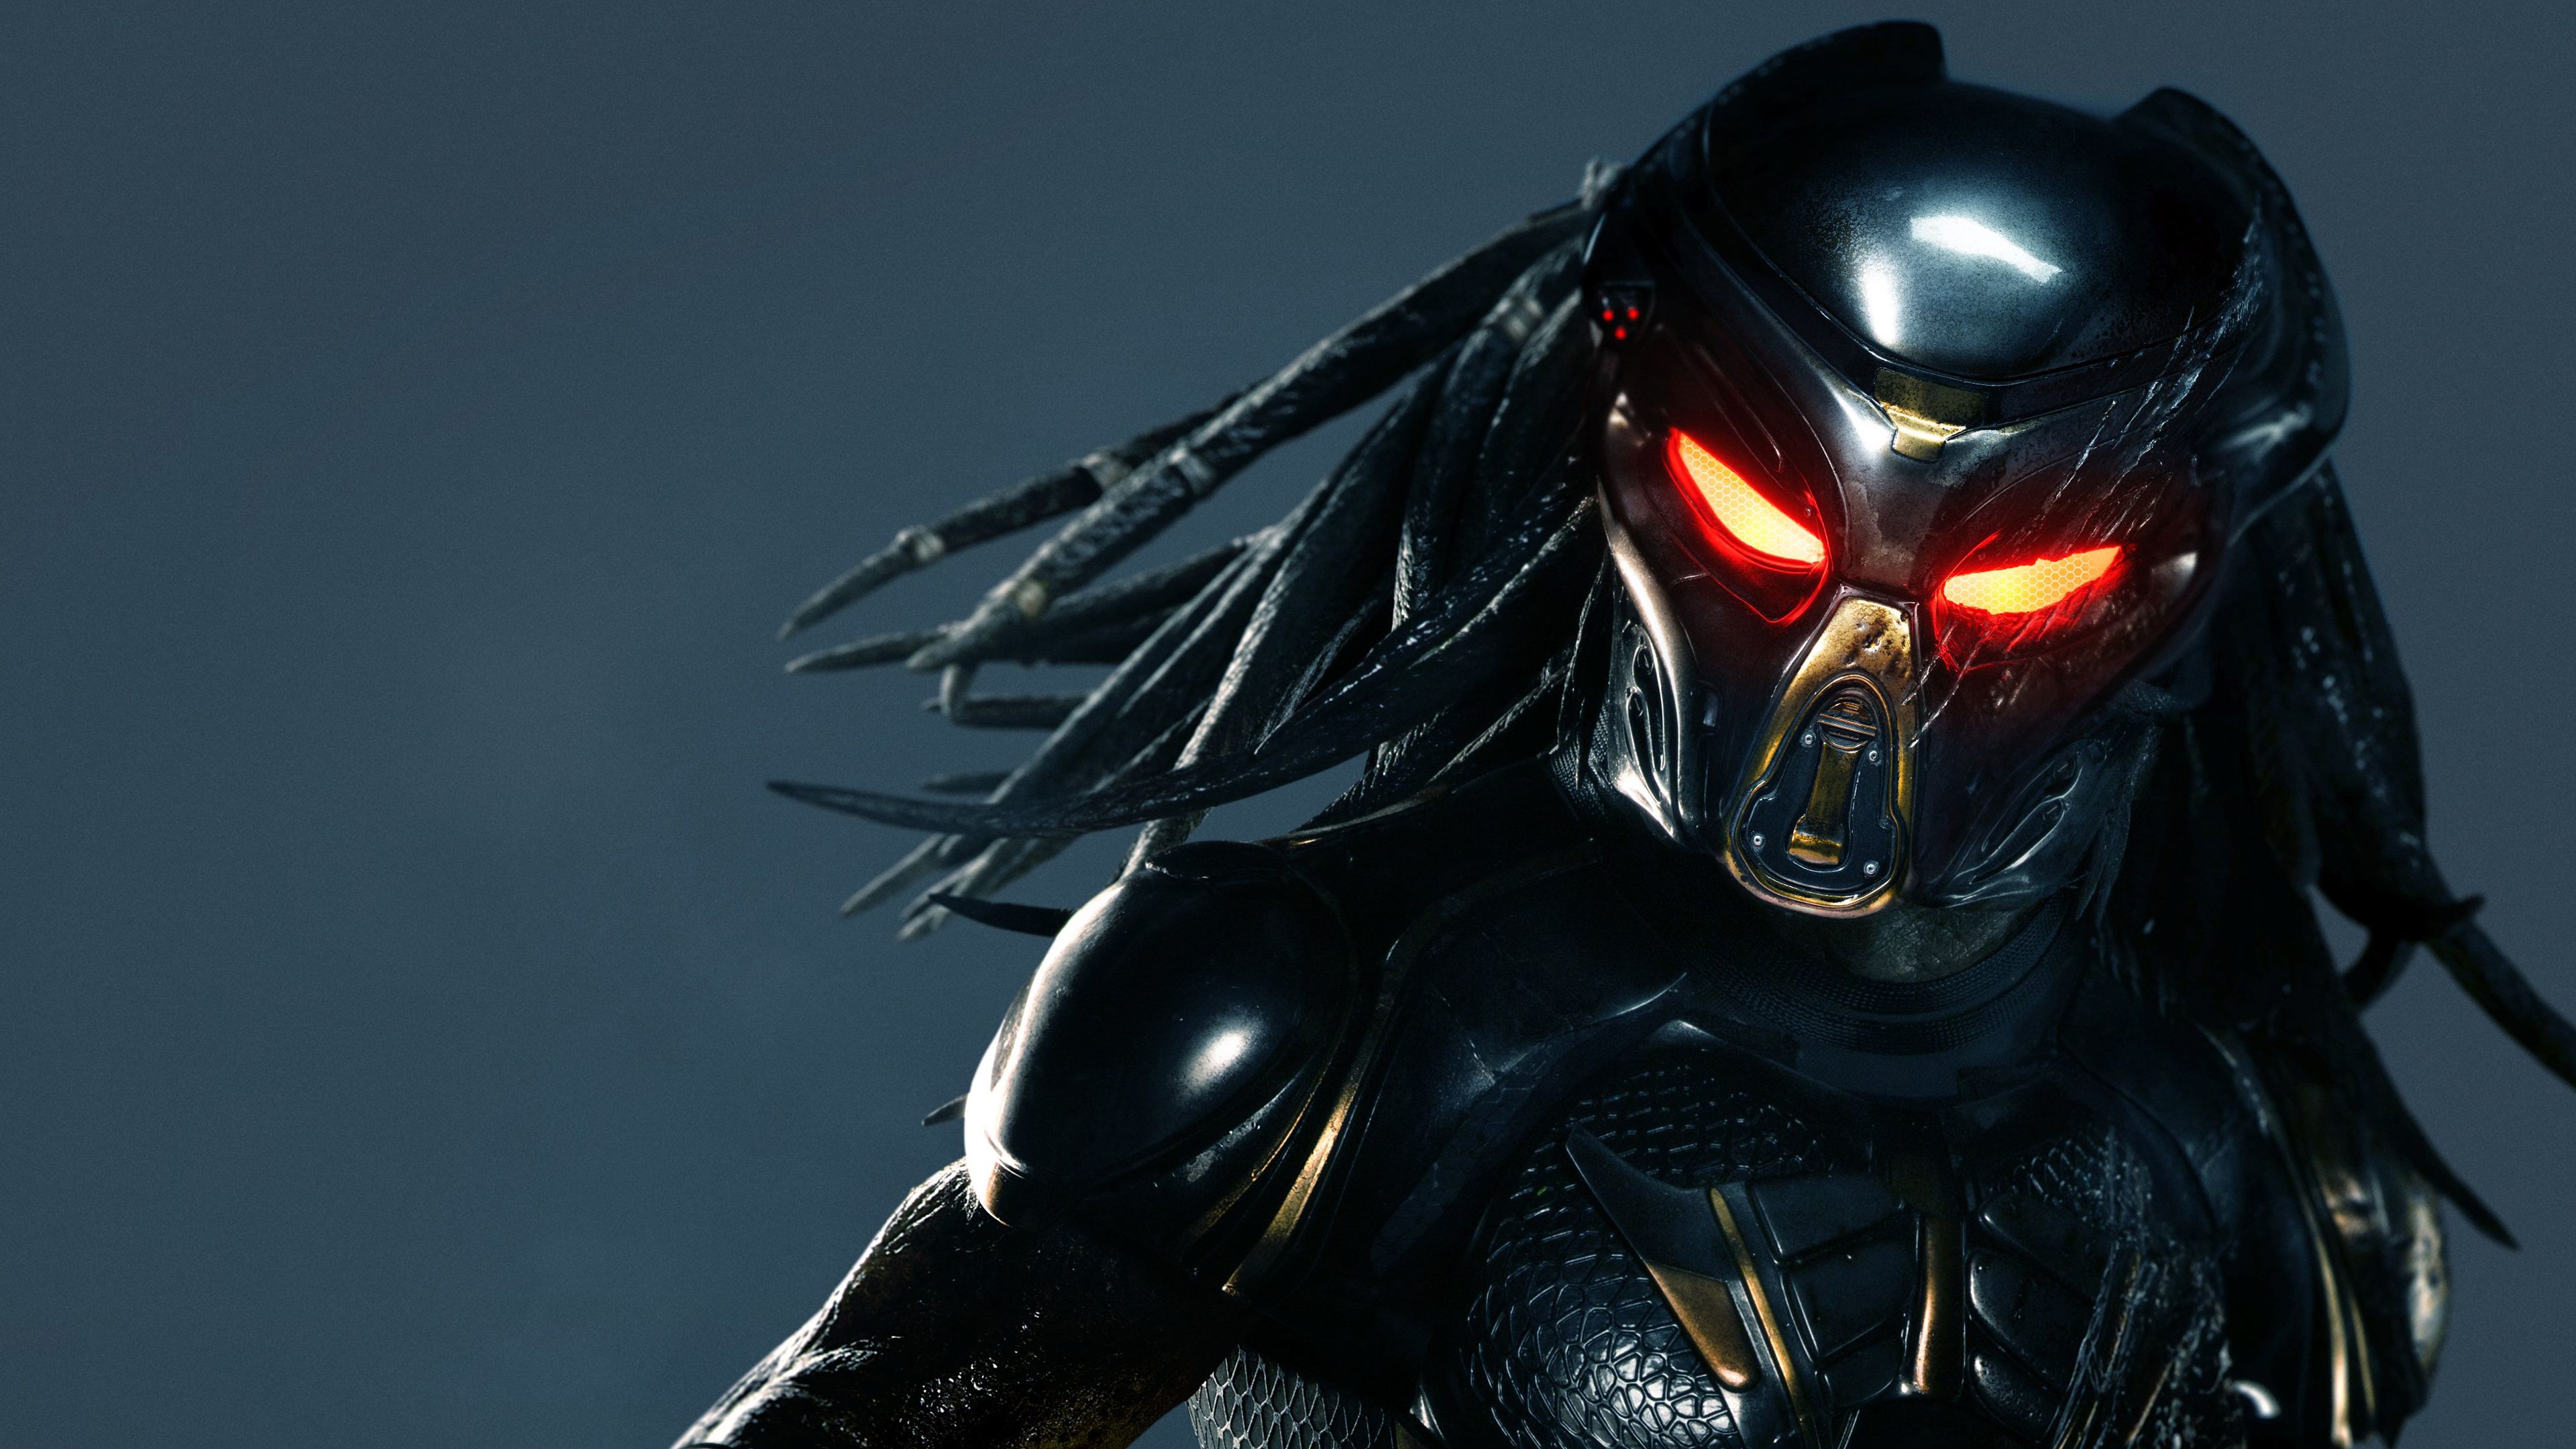 Predator 4k Ultra Hd Wallpaper Background Image